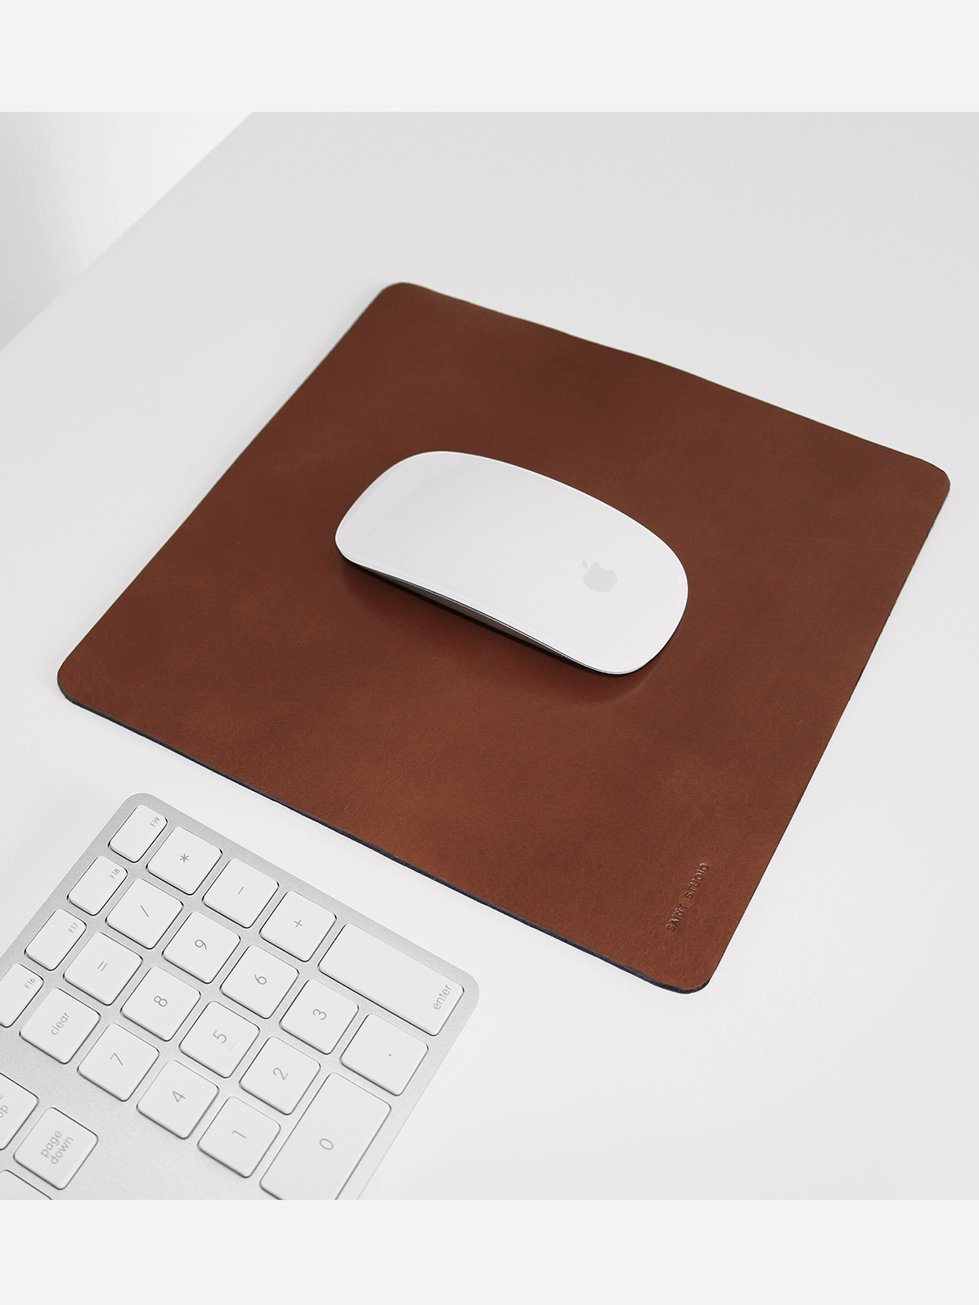 Foto do Mousepad Saint Studio Couro Brown